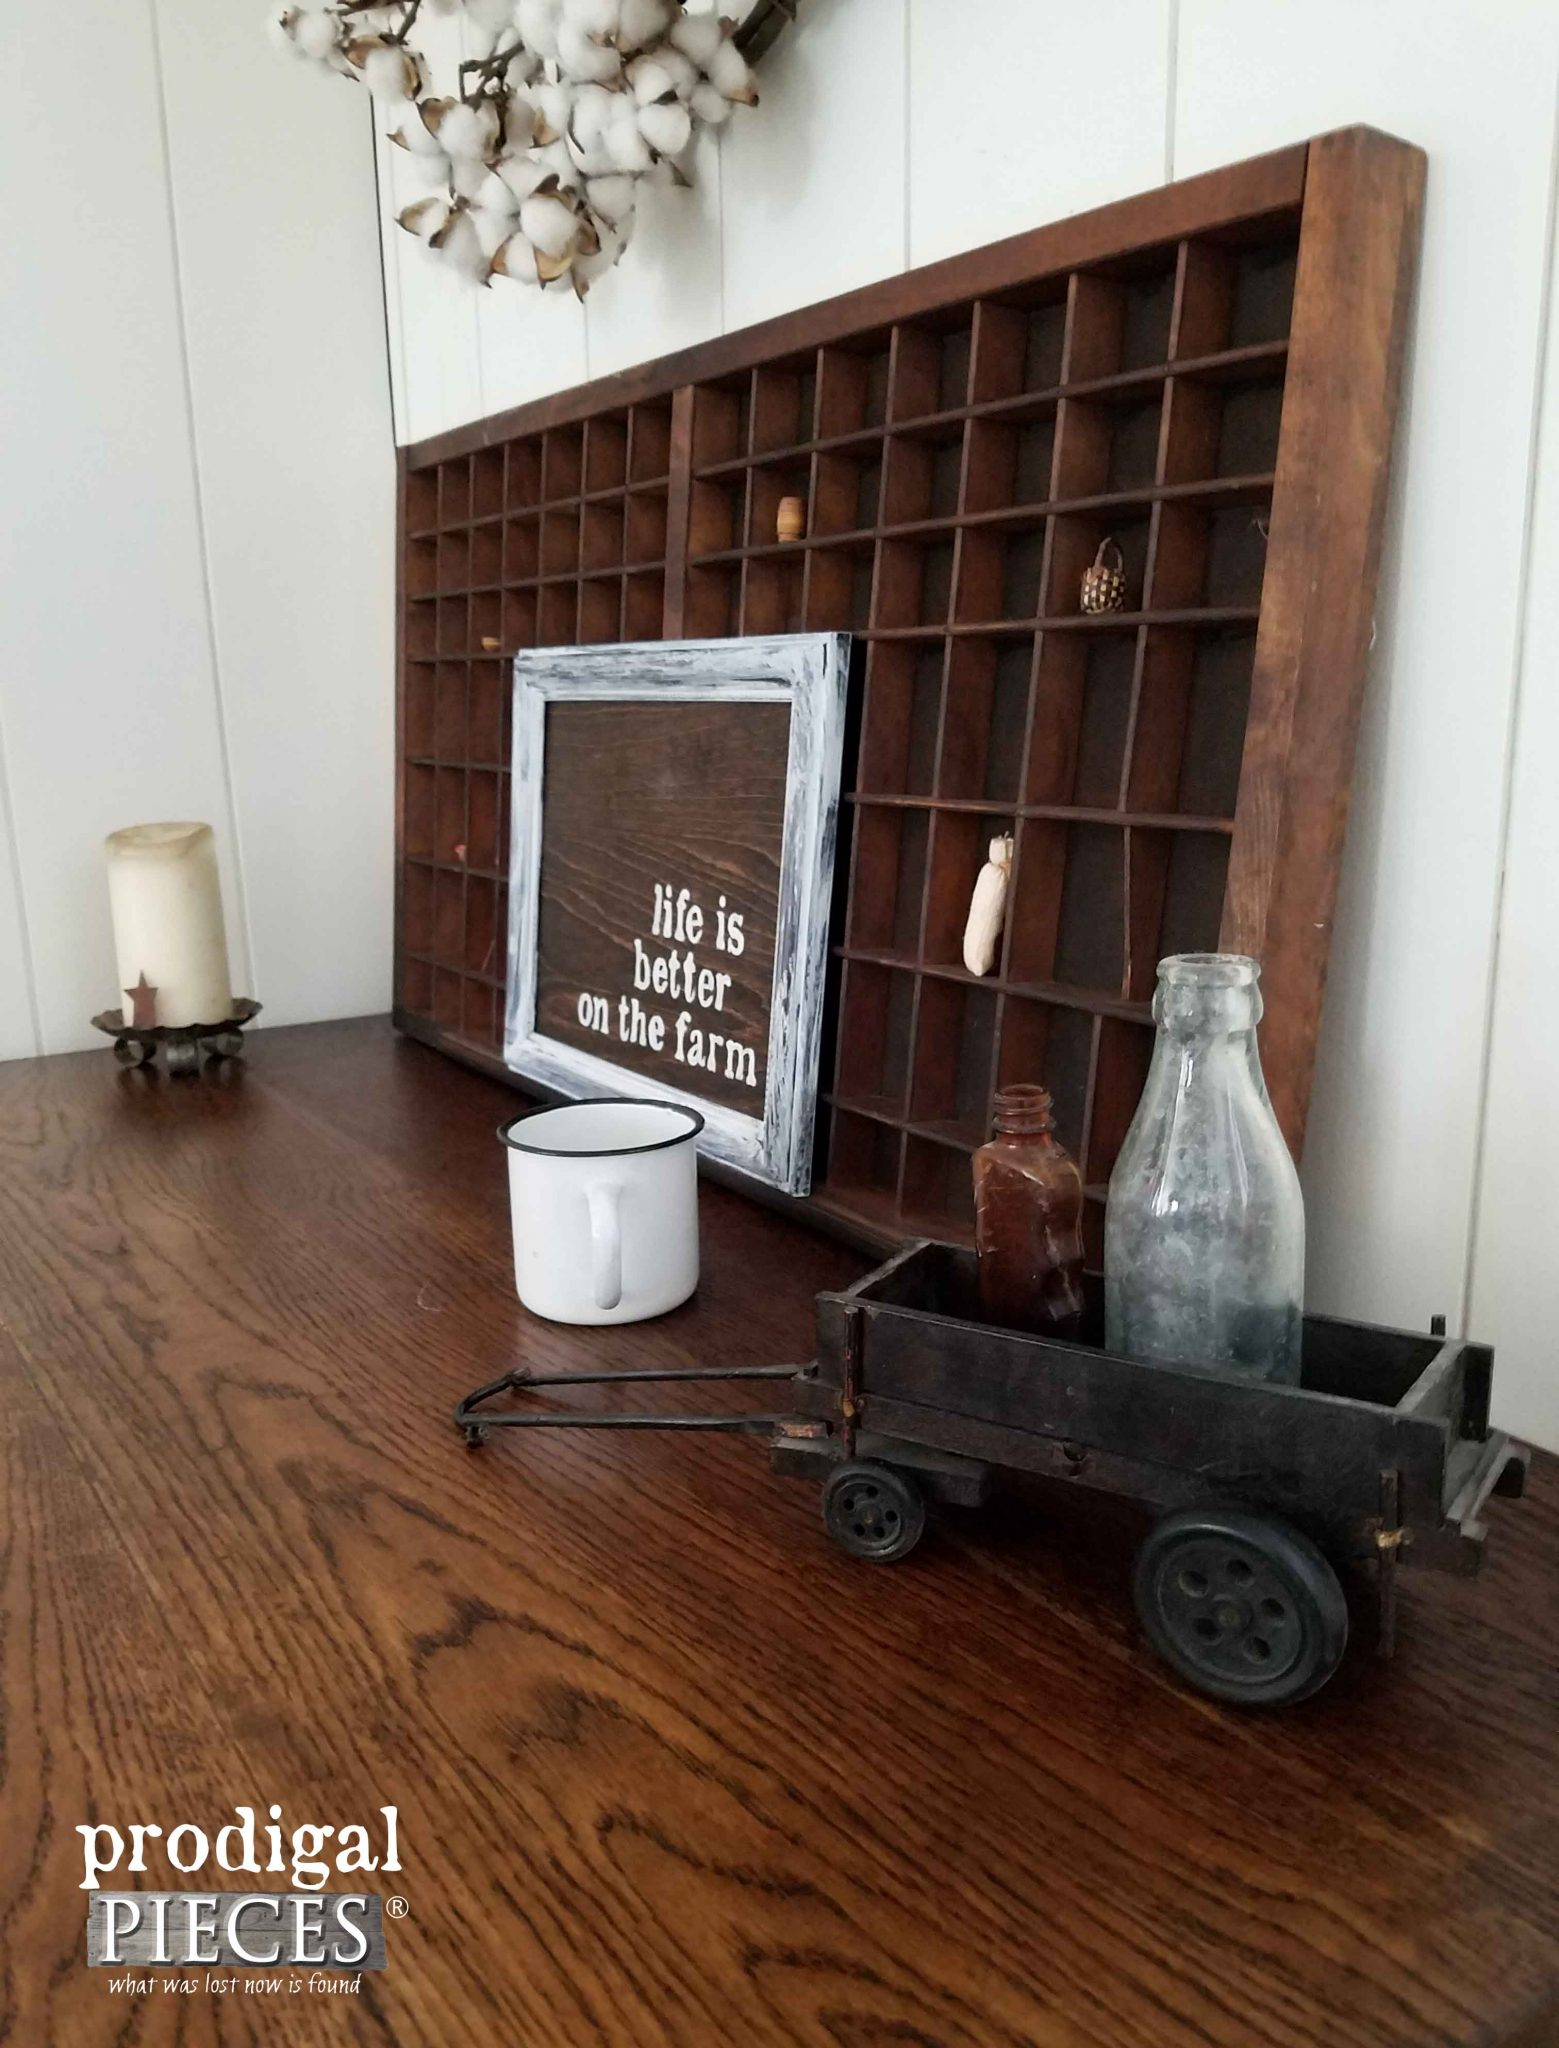 Desk Made New with Industrial Farmhouse Flair by Prodigal Pieces | prodigalpieces.com